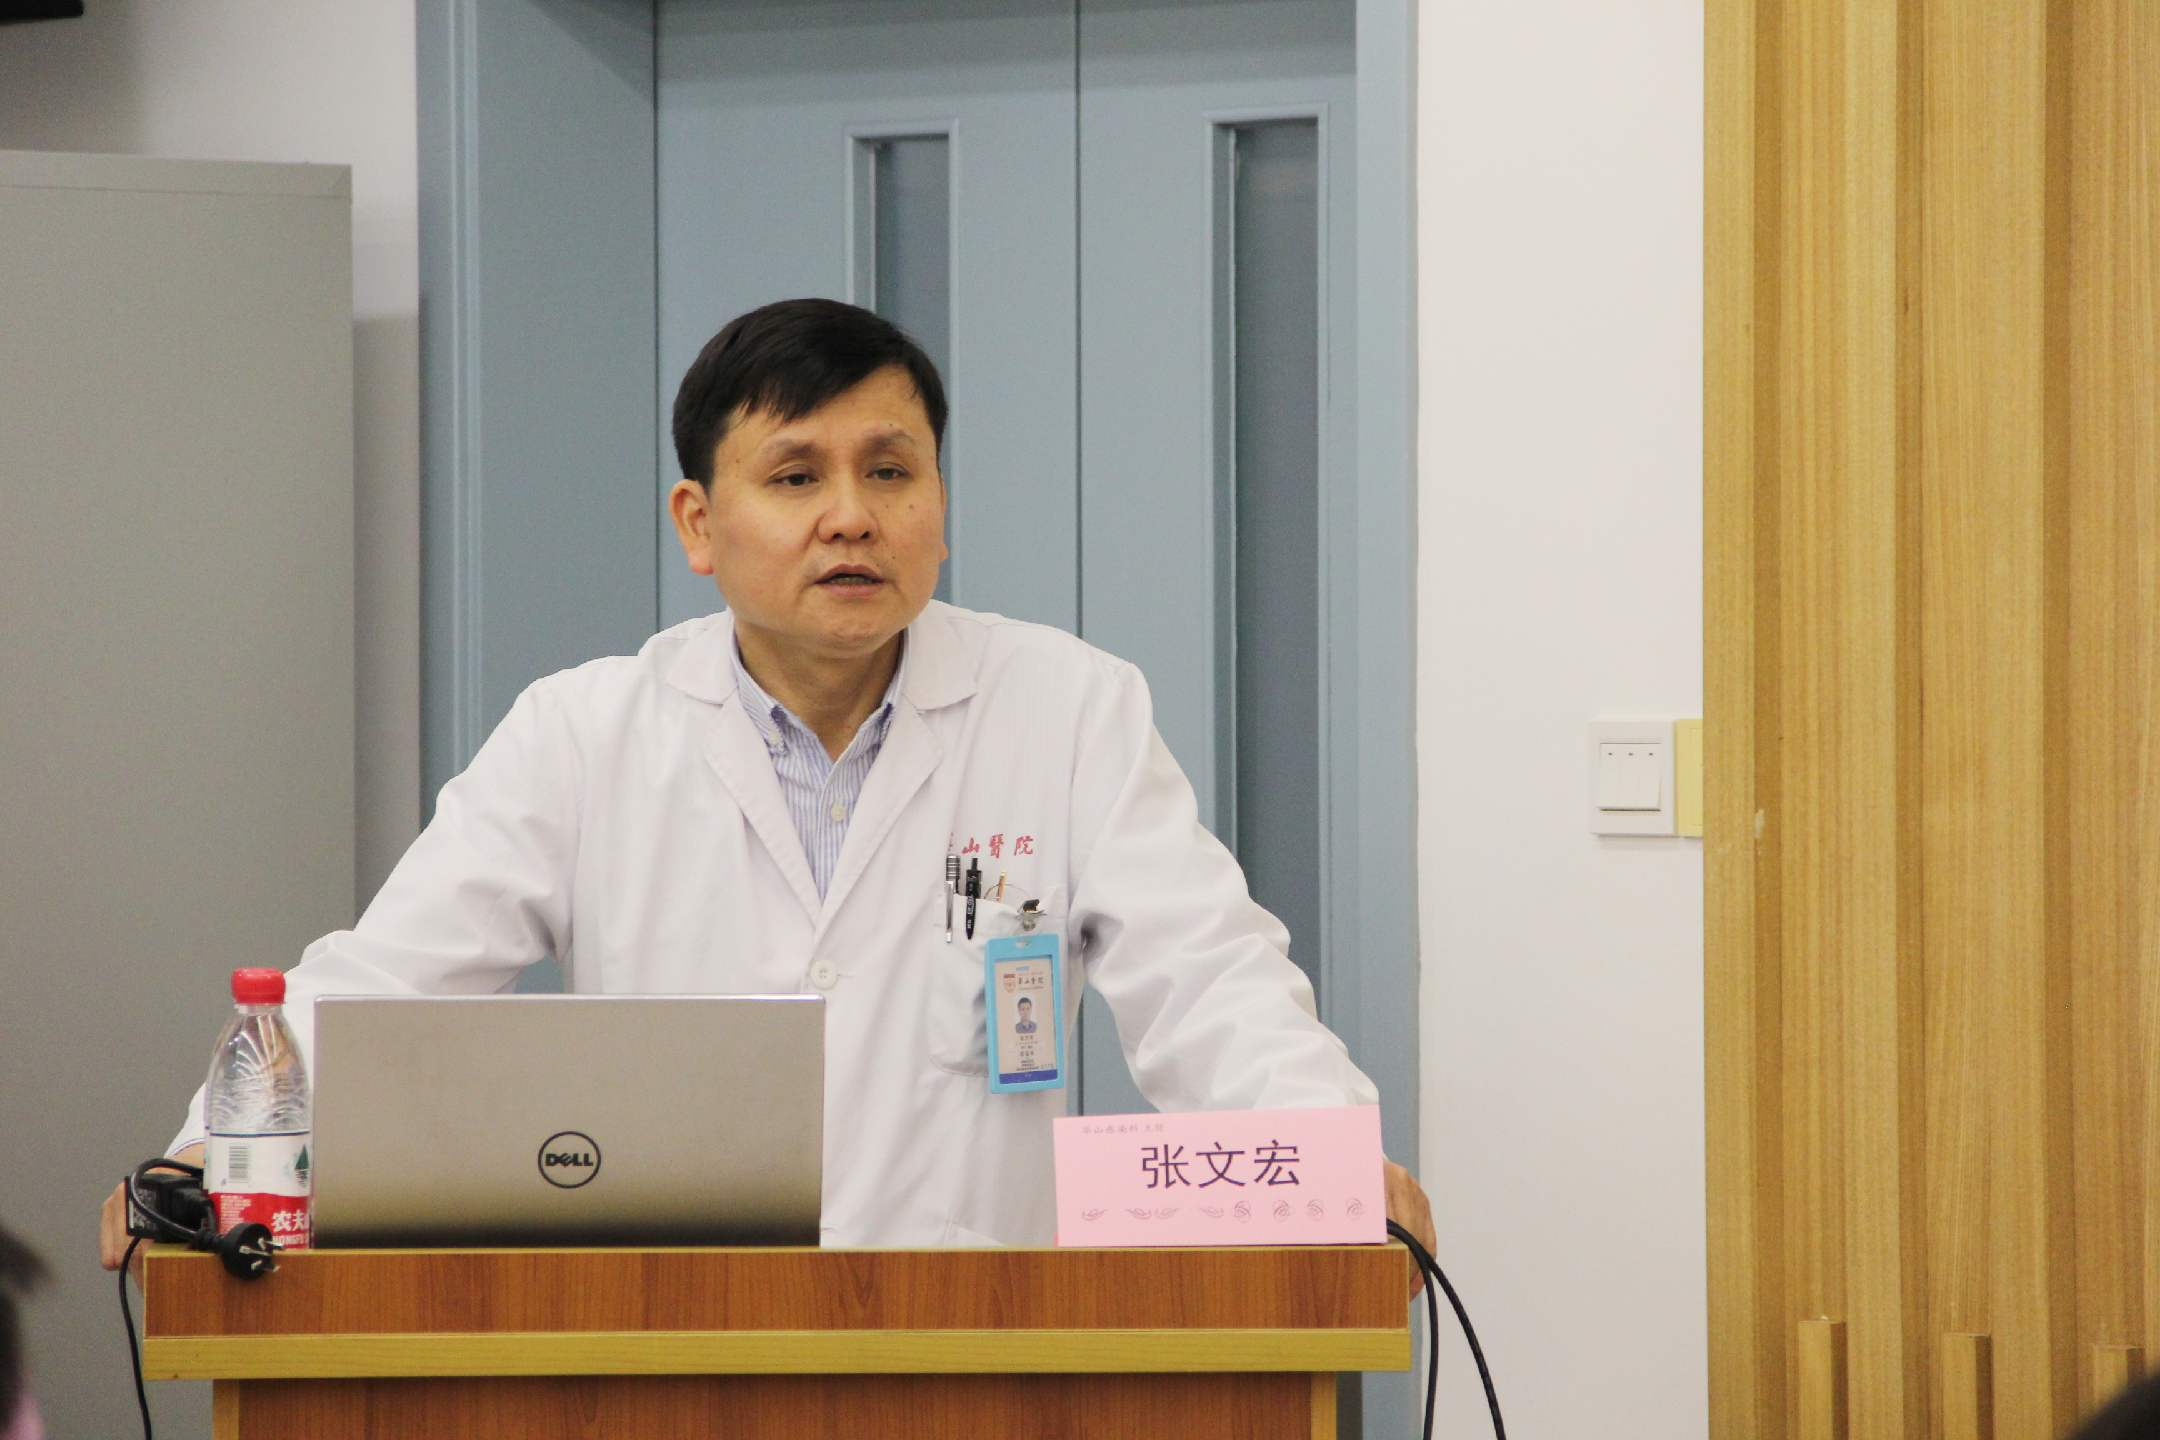 A son's letter to father fighting virus in Wuhan